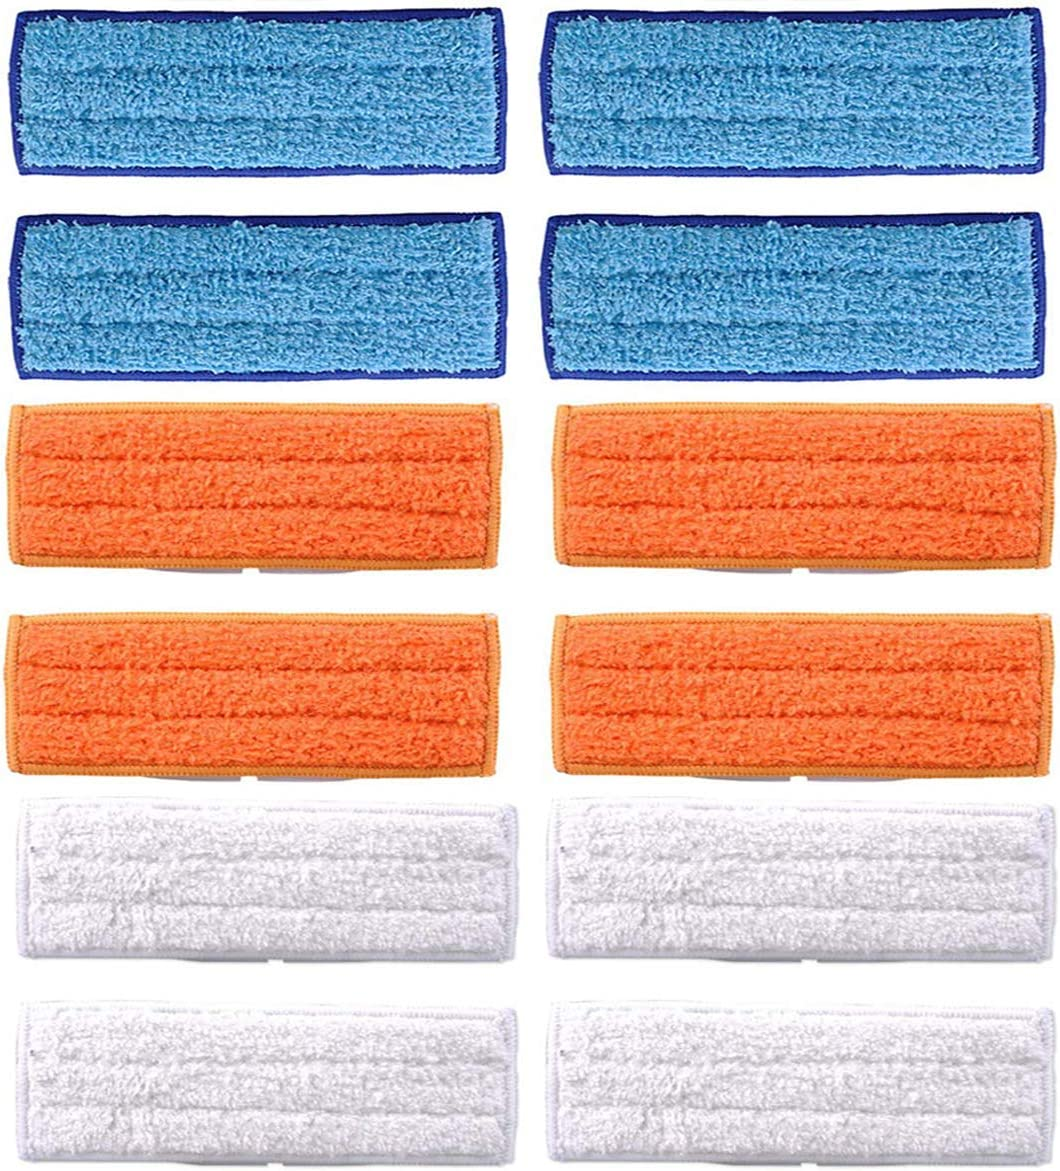 LICORNE Mop Heads Washable Mopping Pads for IRobot Braava Jet 240 241 Mop Pads, Reusable Reusable Wet Damp Dry Pads Sweeping 12 Pcs